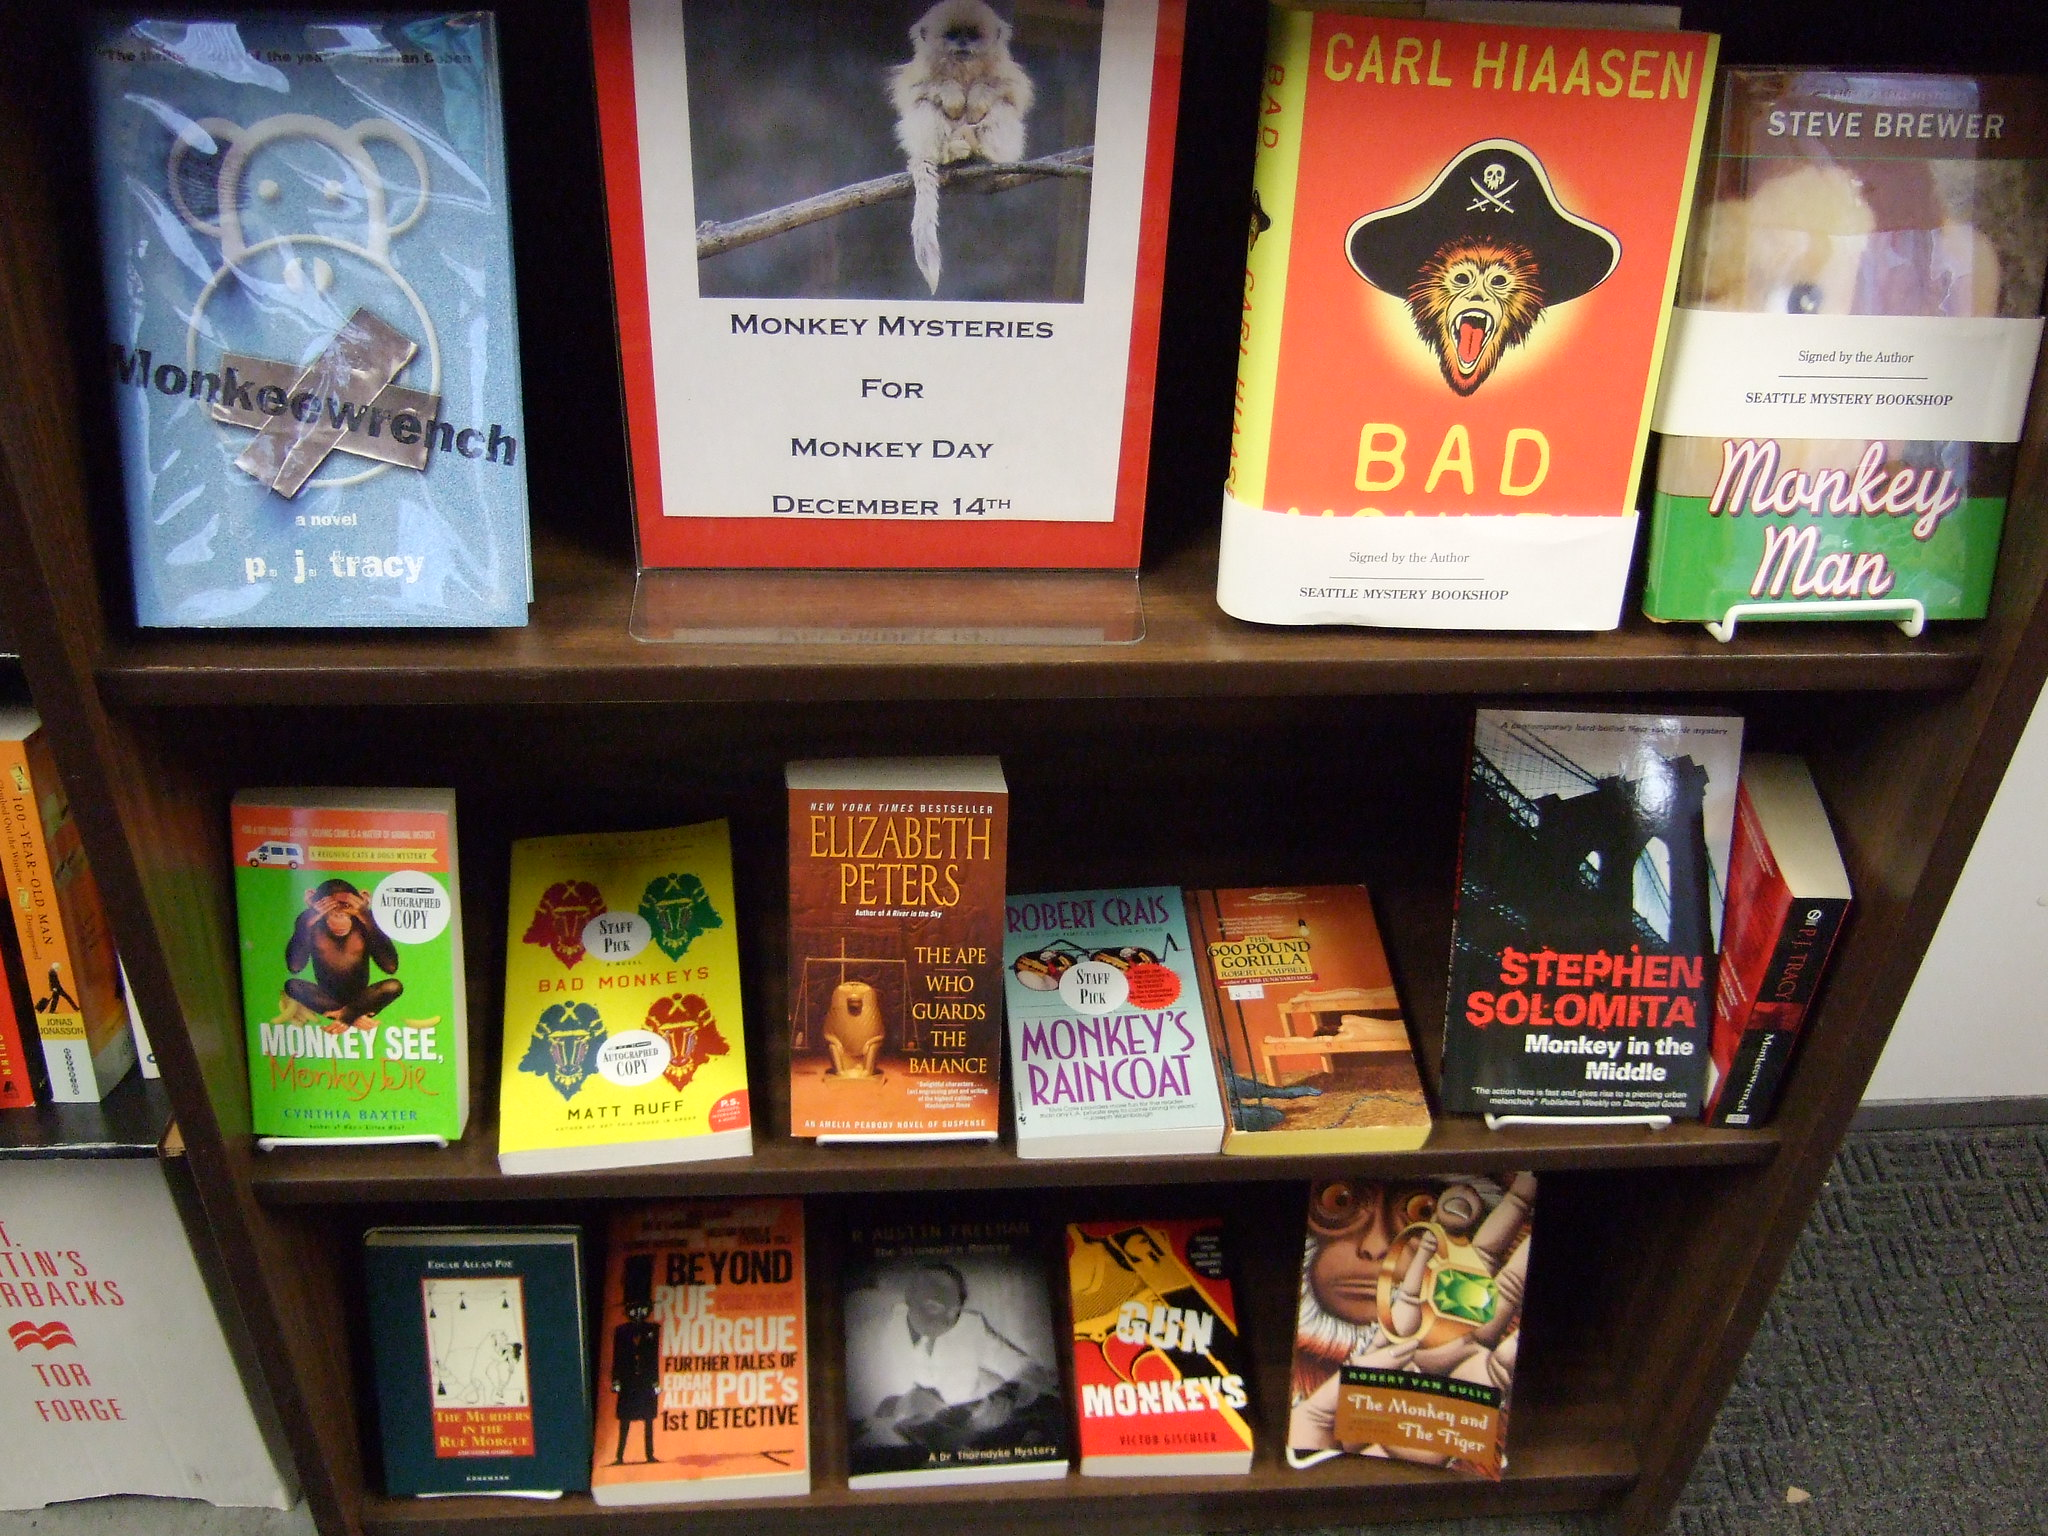 Display at the Mystery Bookshop in Seattle, Washington, on November 25, 2013.